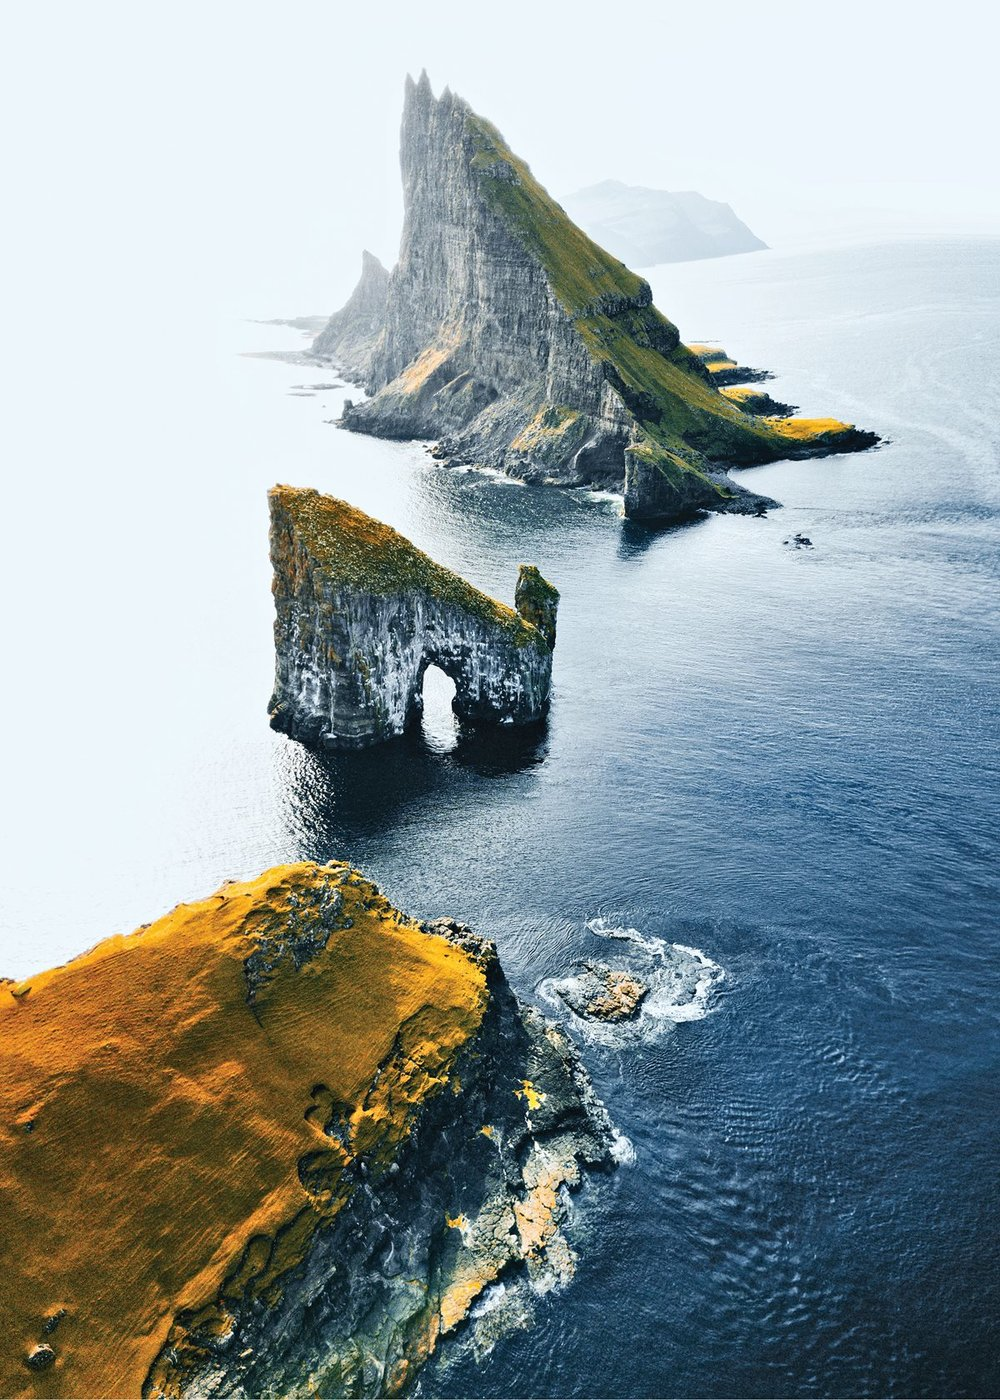 The Drangarnir sea stacks, off the coast of Vágar in the Faroe Islands.    Photo by Franck Reporter/Getty Images